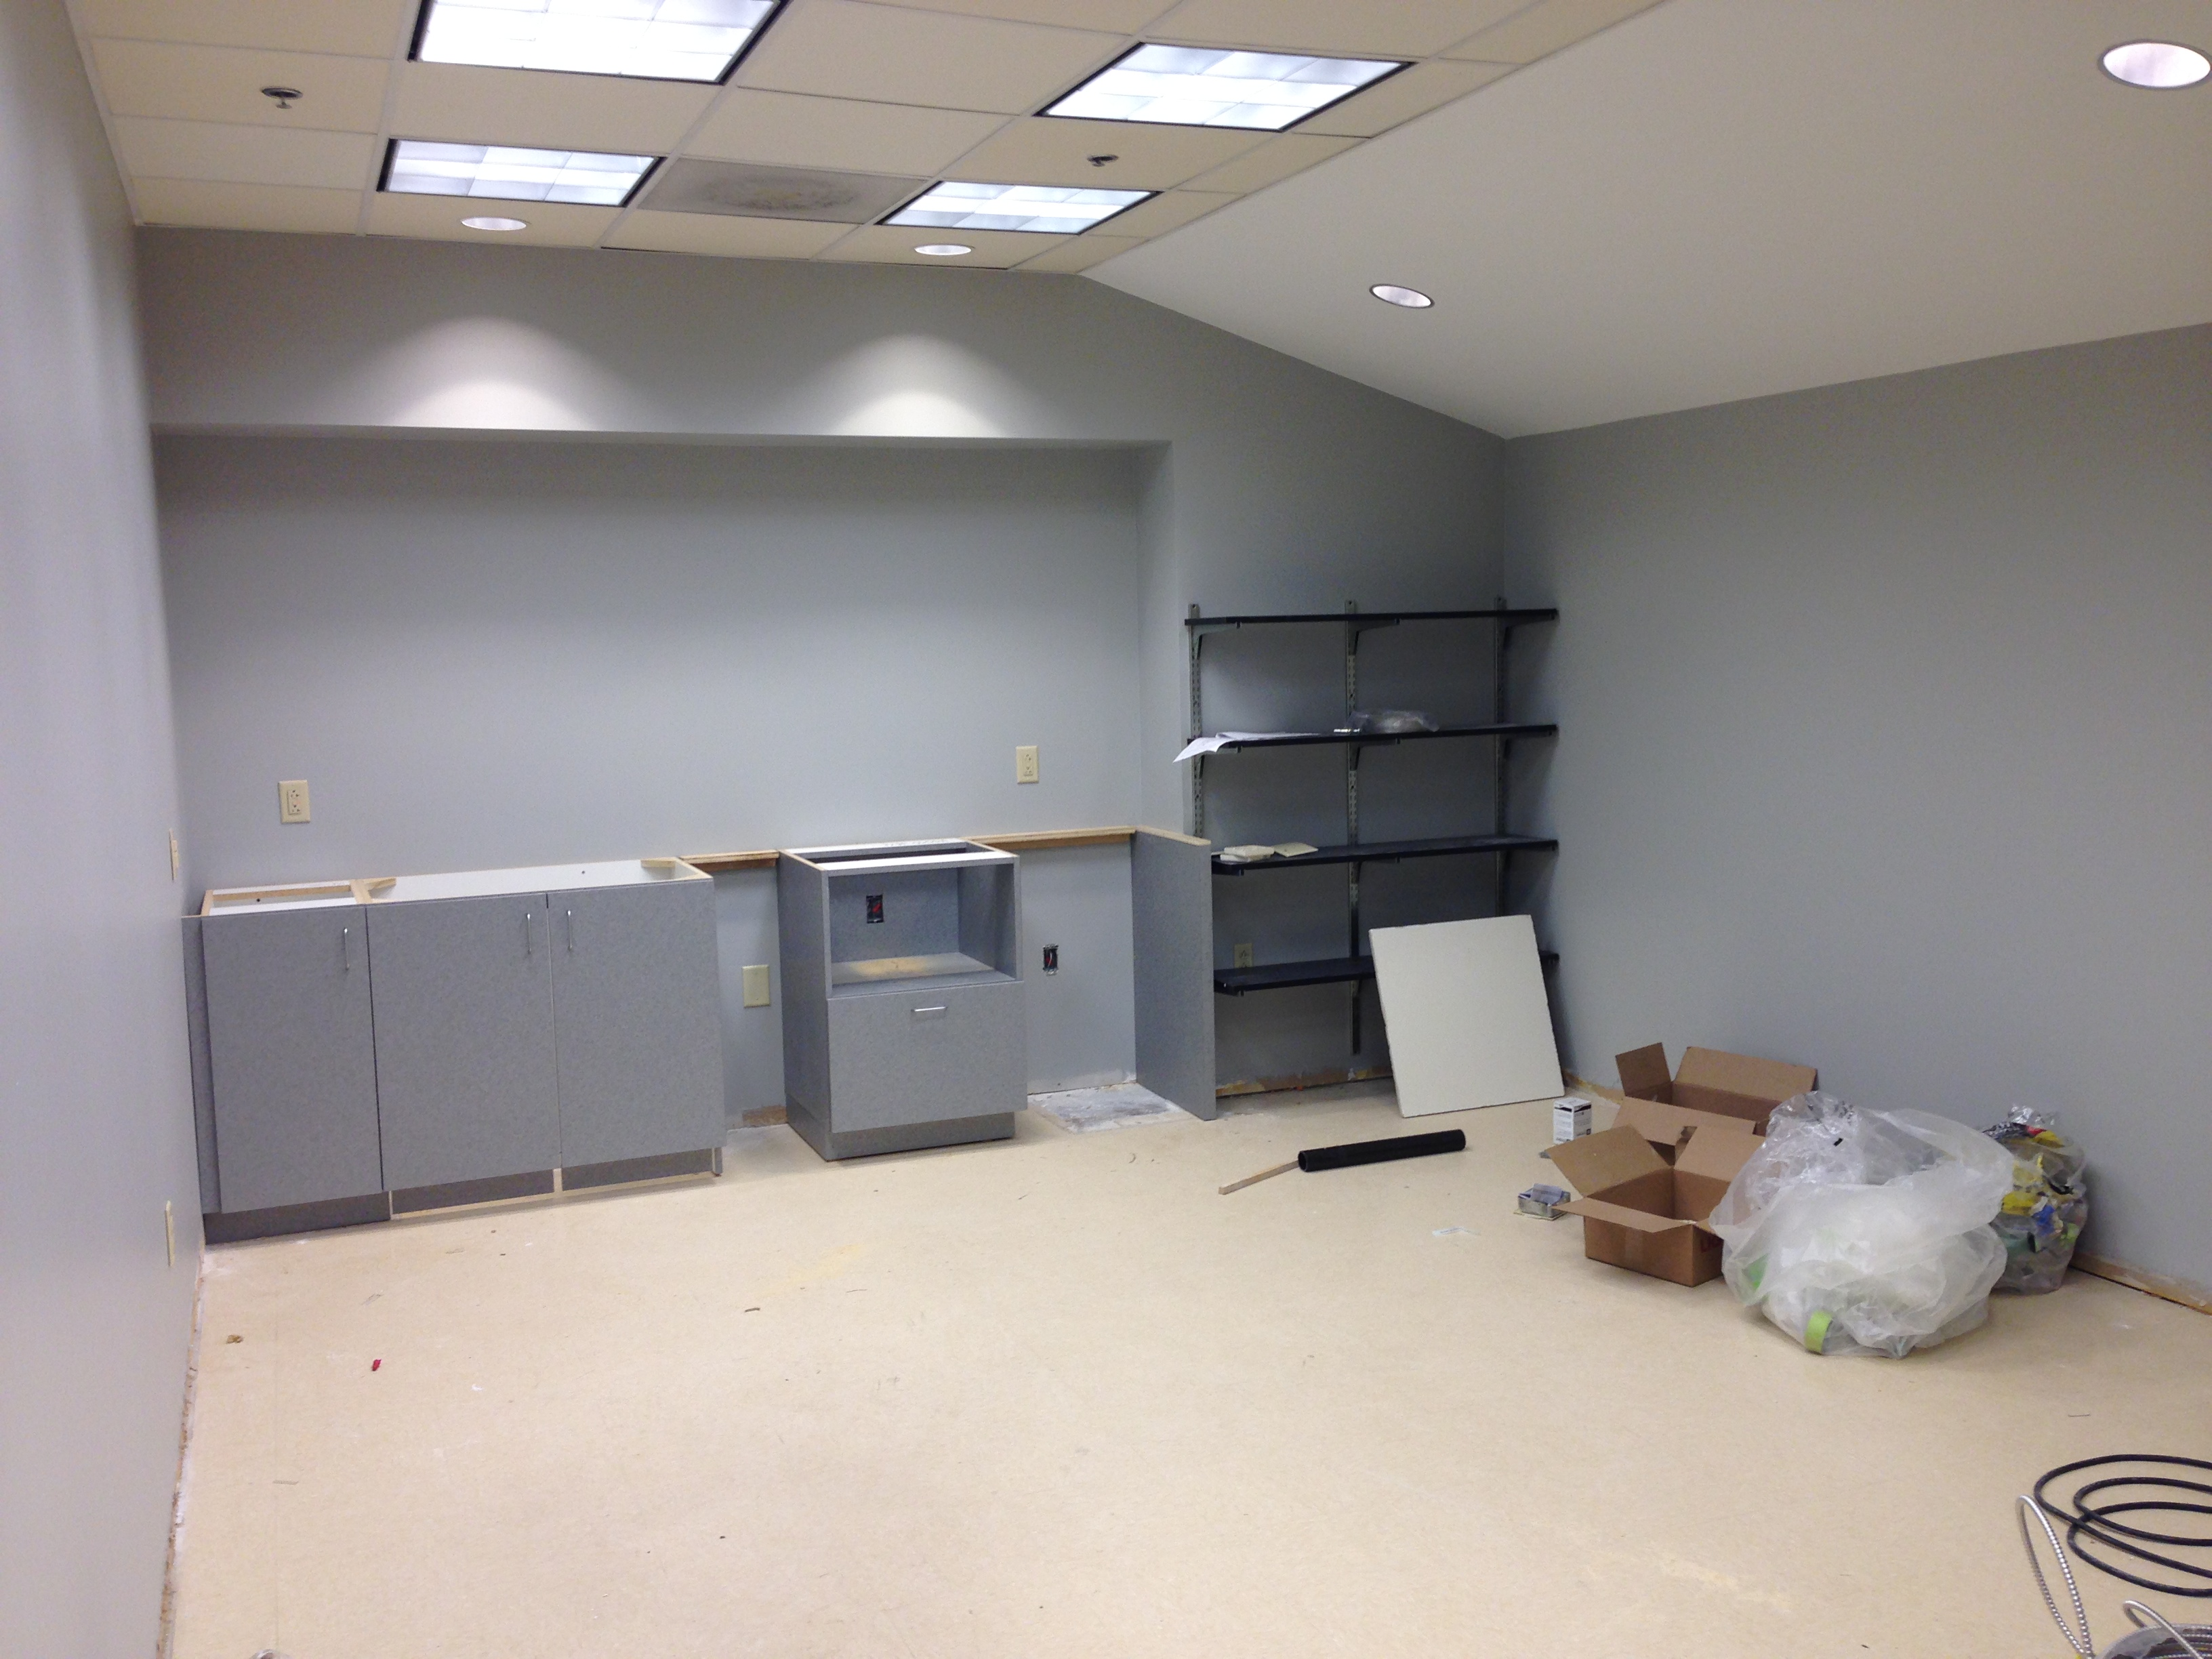 Renovations in the Emerson Center – THE EVANGELISTA LAB